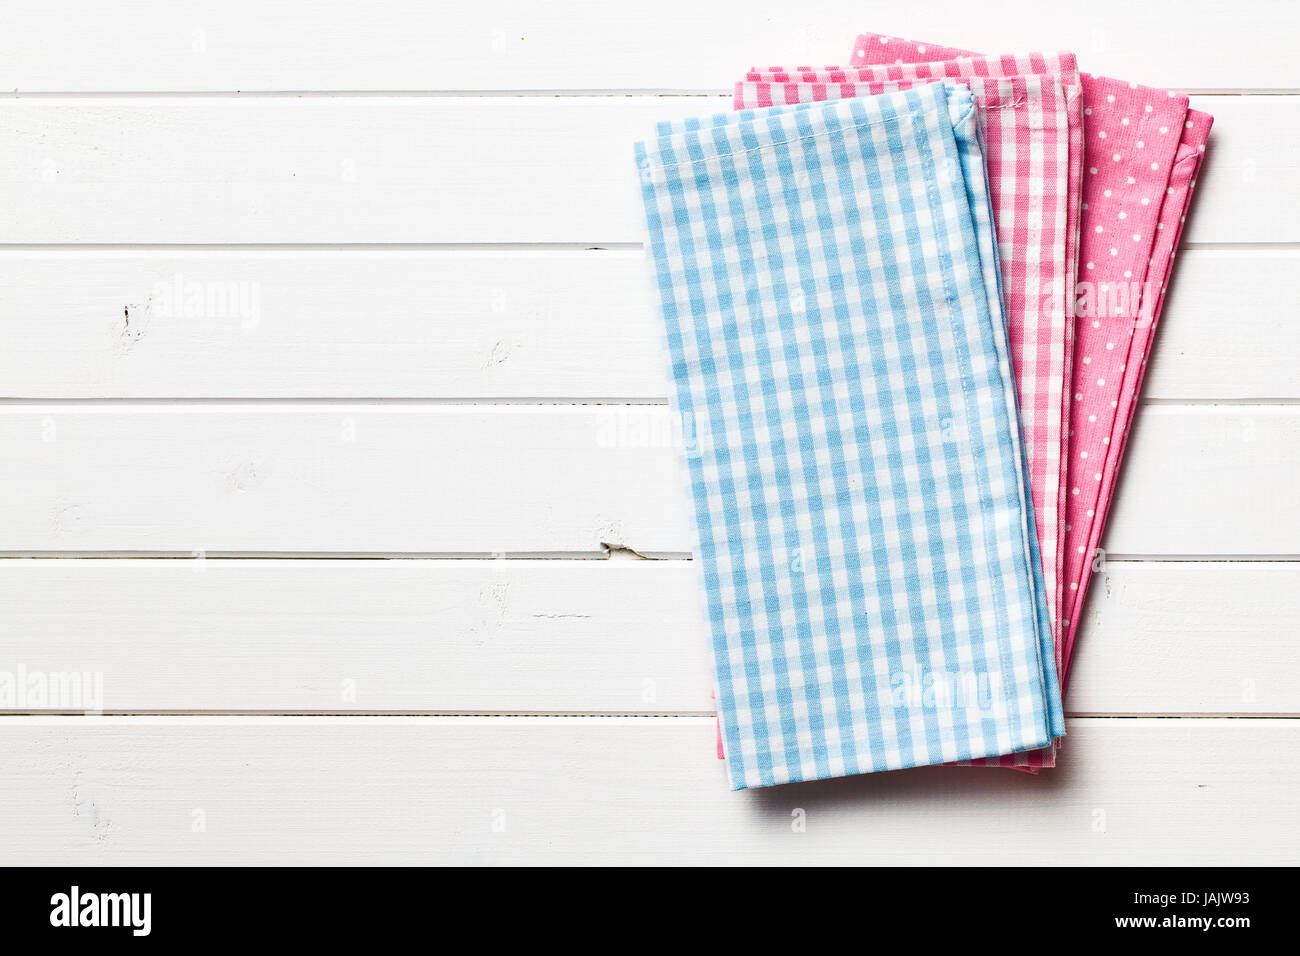 kitchen napkins small island for top view of colorful on white wooden background